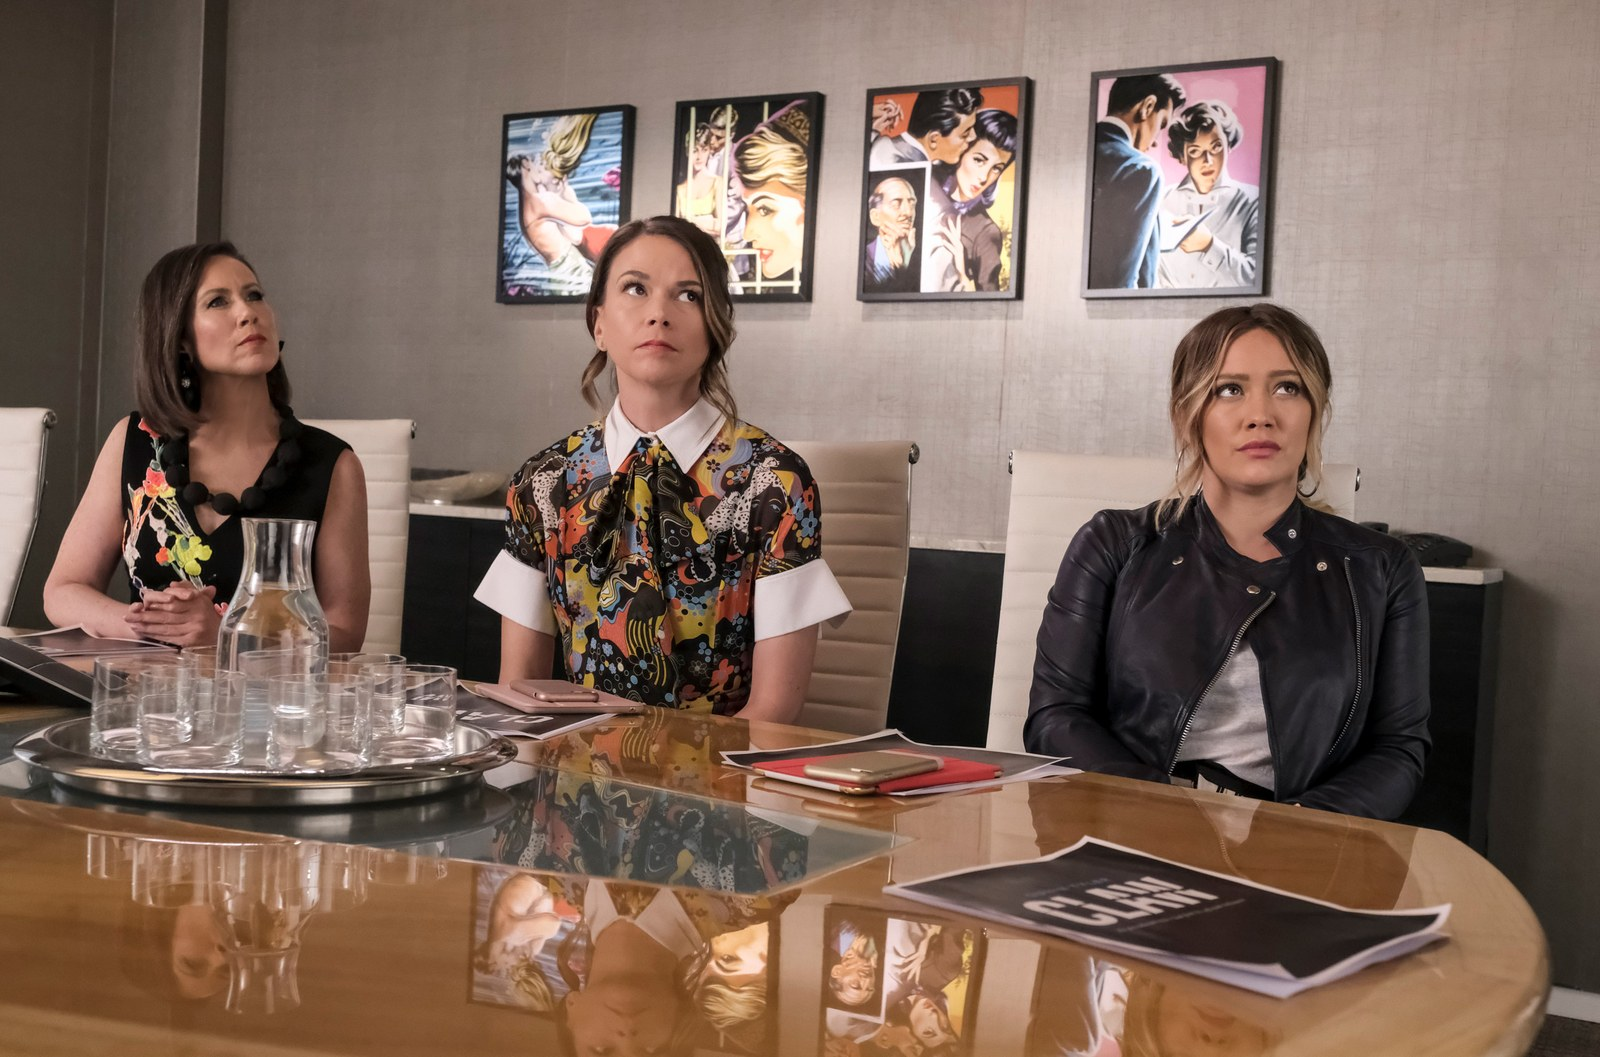 Miriam Shor Sutton Foster and Hilary Duff on Younger.